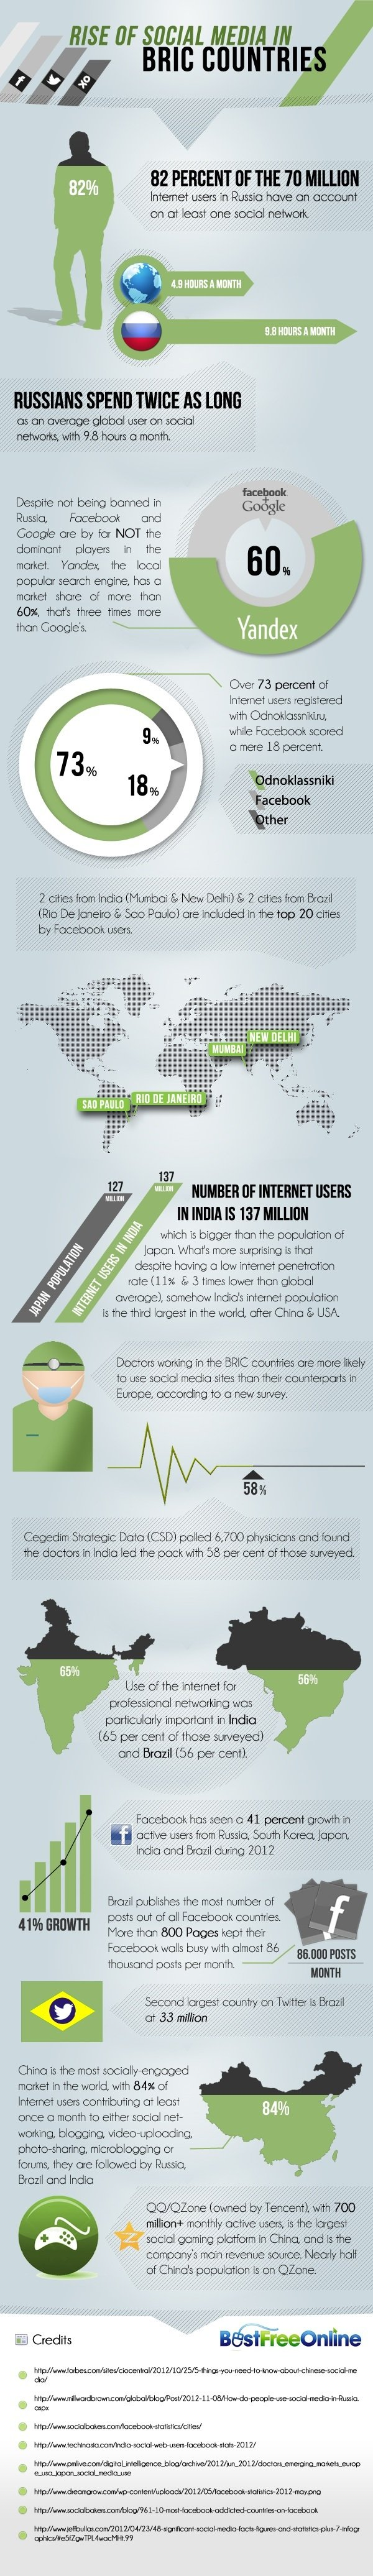 bric-social-media-infographic